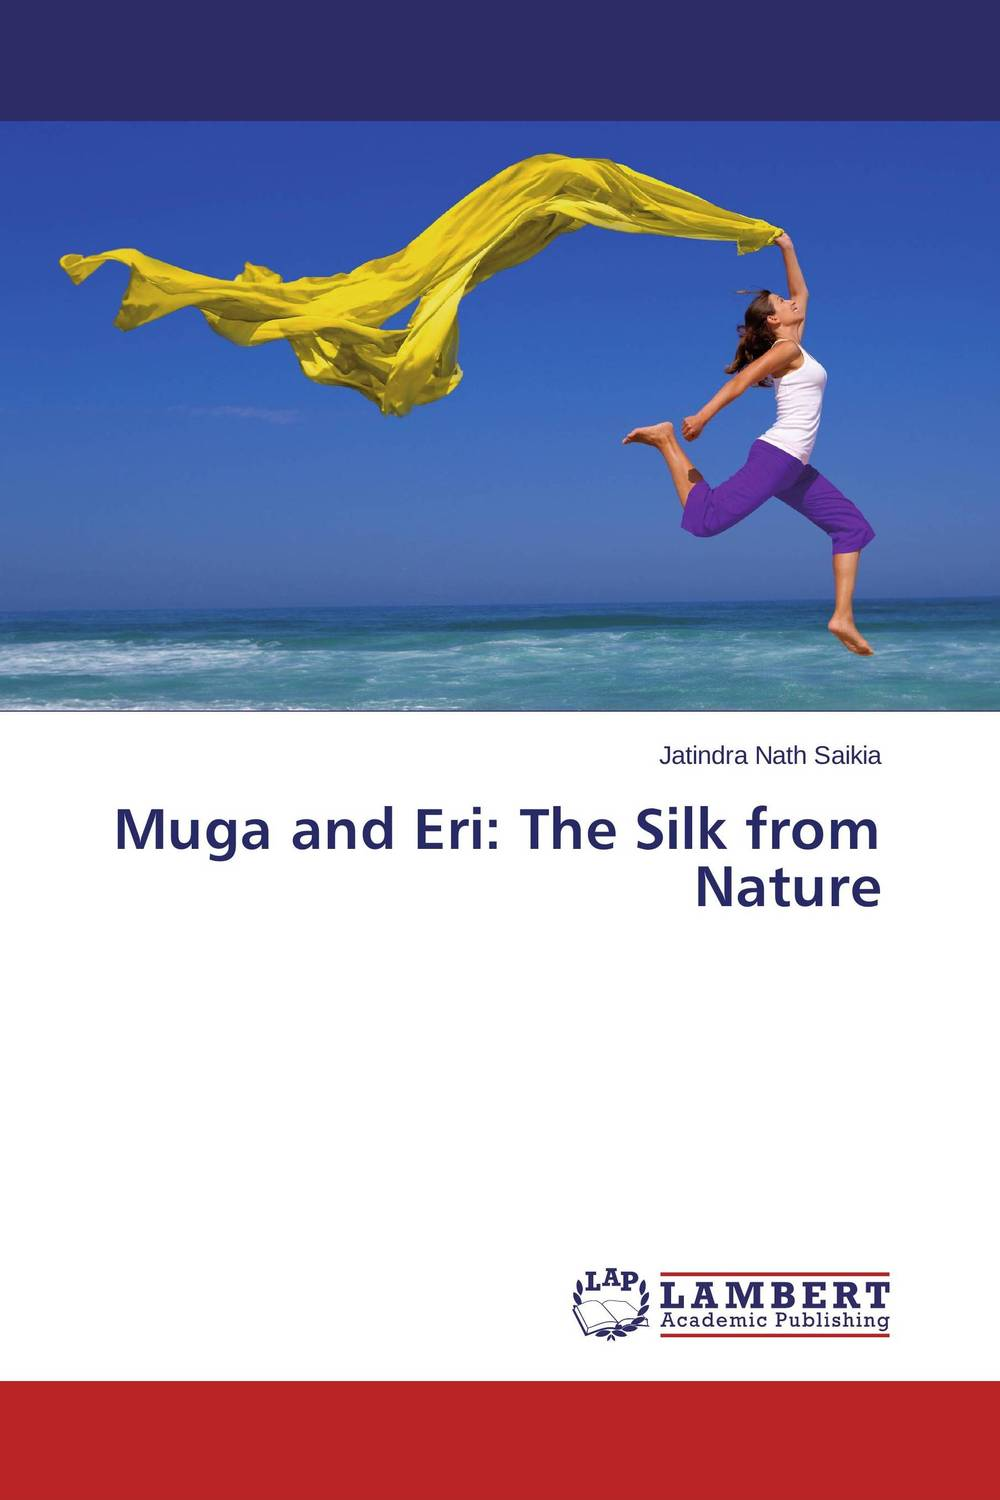 Muga and Eri: The Silk from Nature